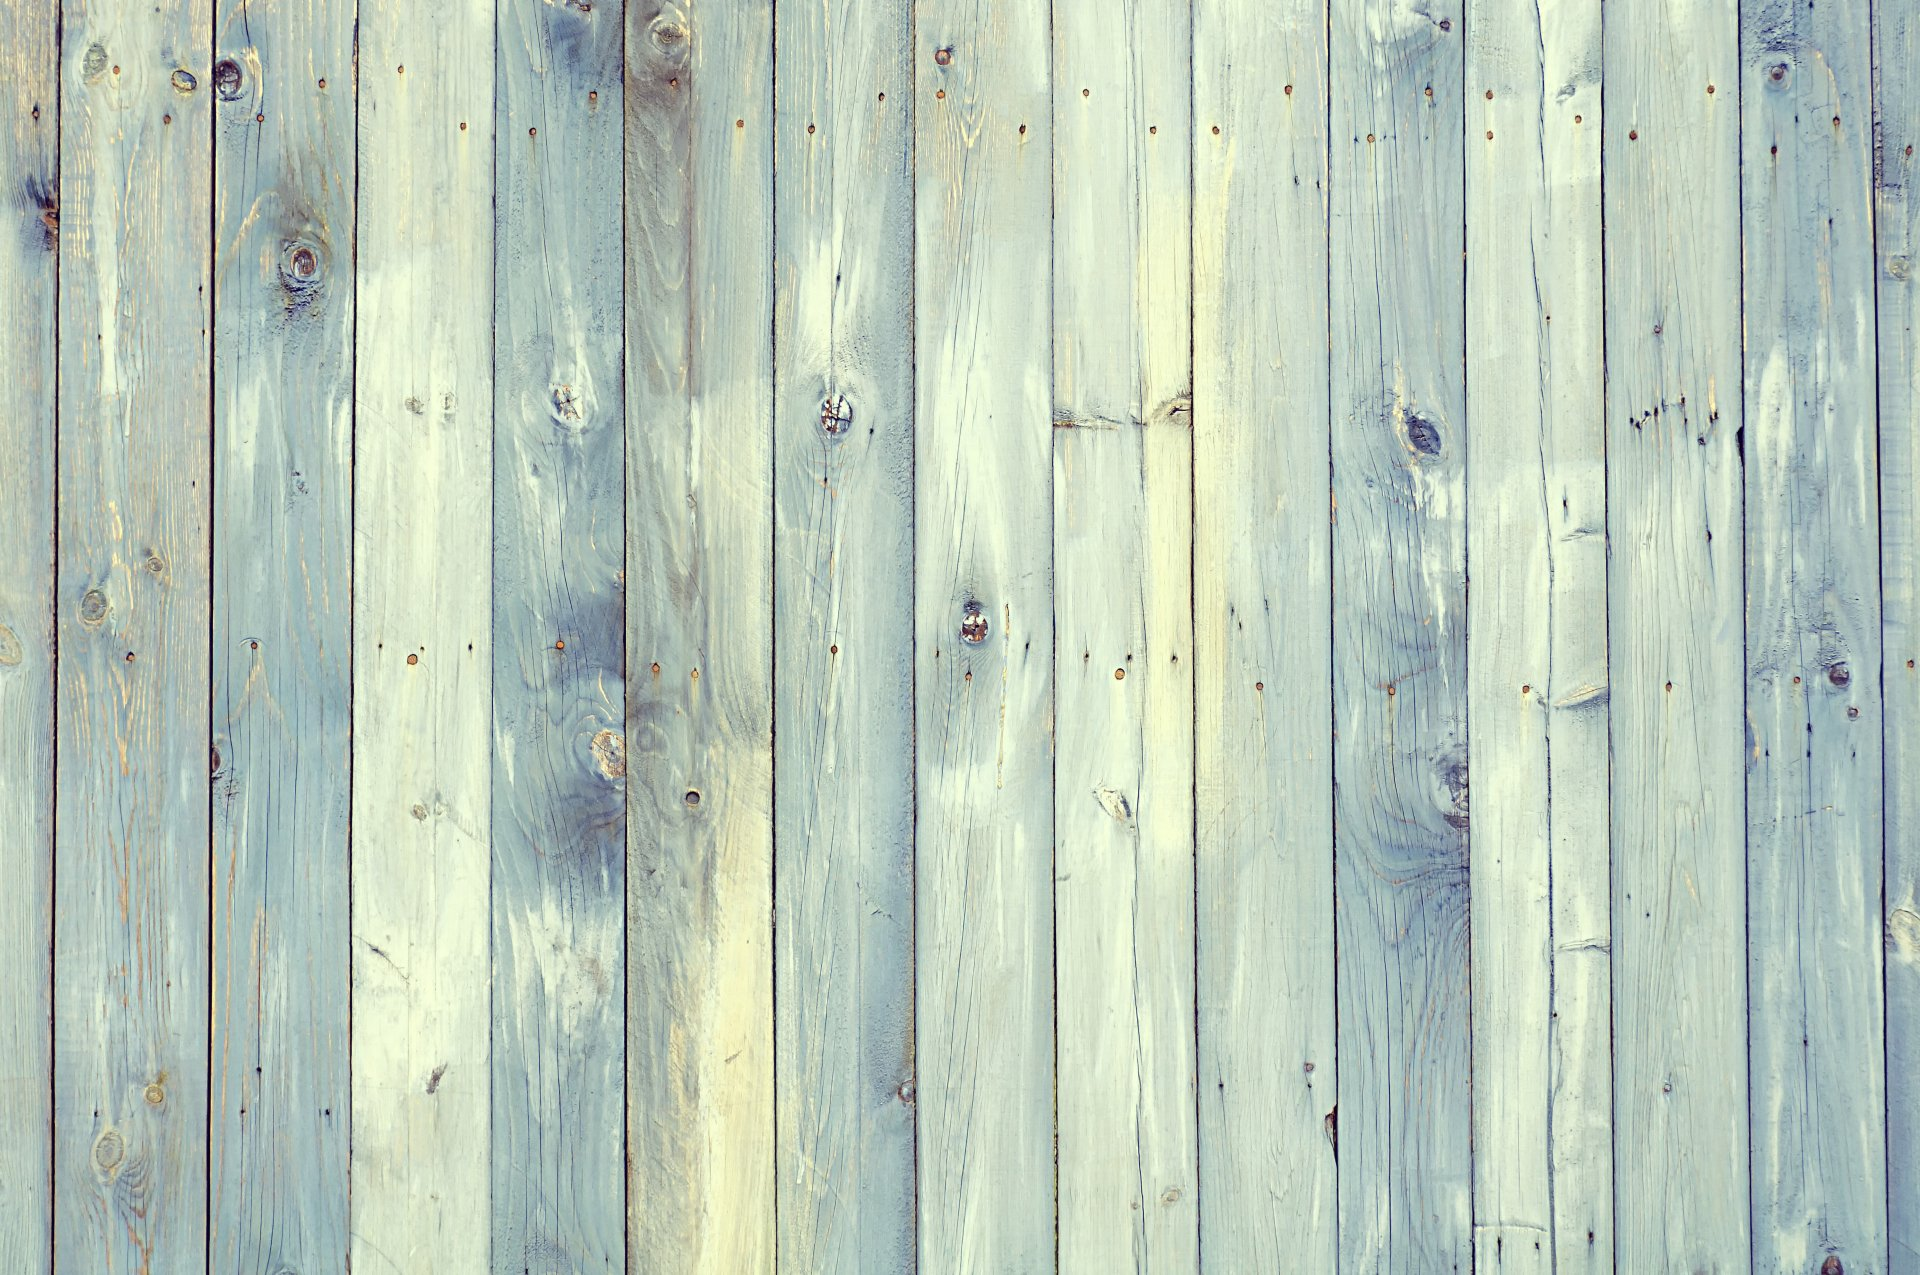 Wood 8k Ultra HD Wallpaper and Background Image